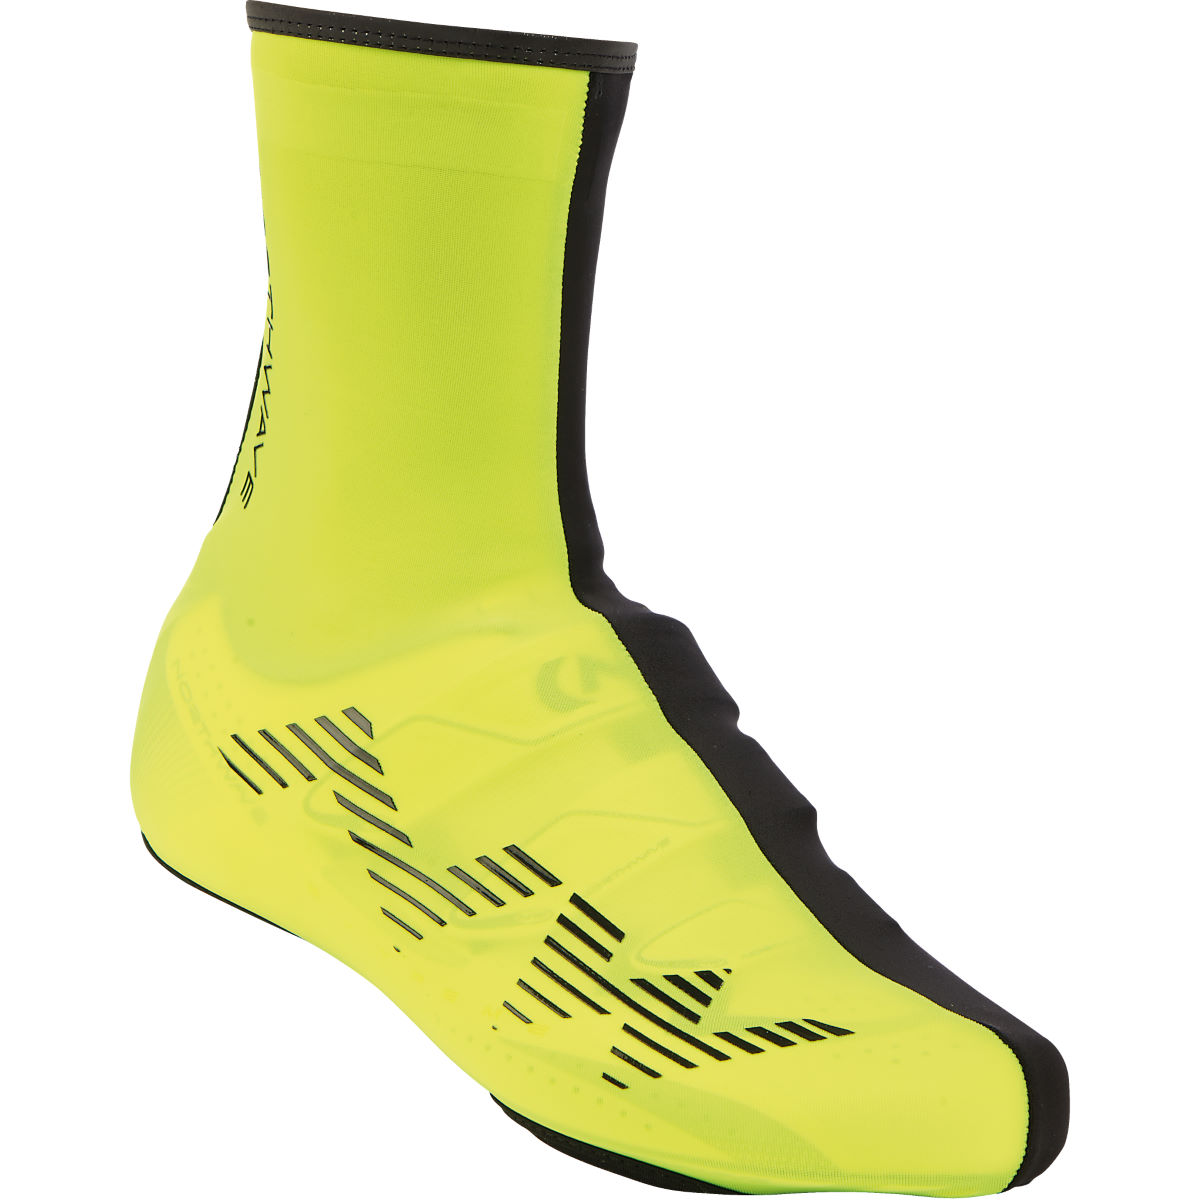 Couvre-chaussures Northwave Evolution - S Jaune Couvre-chaussures